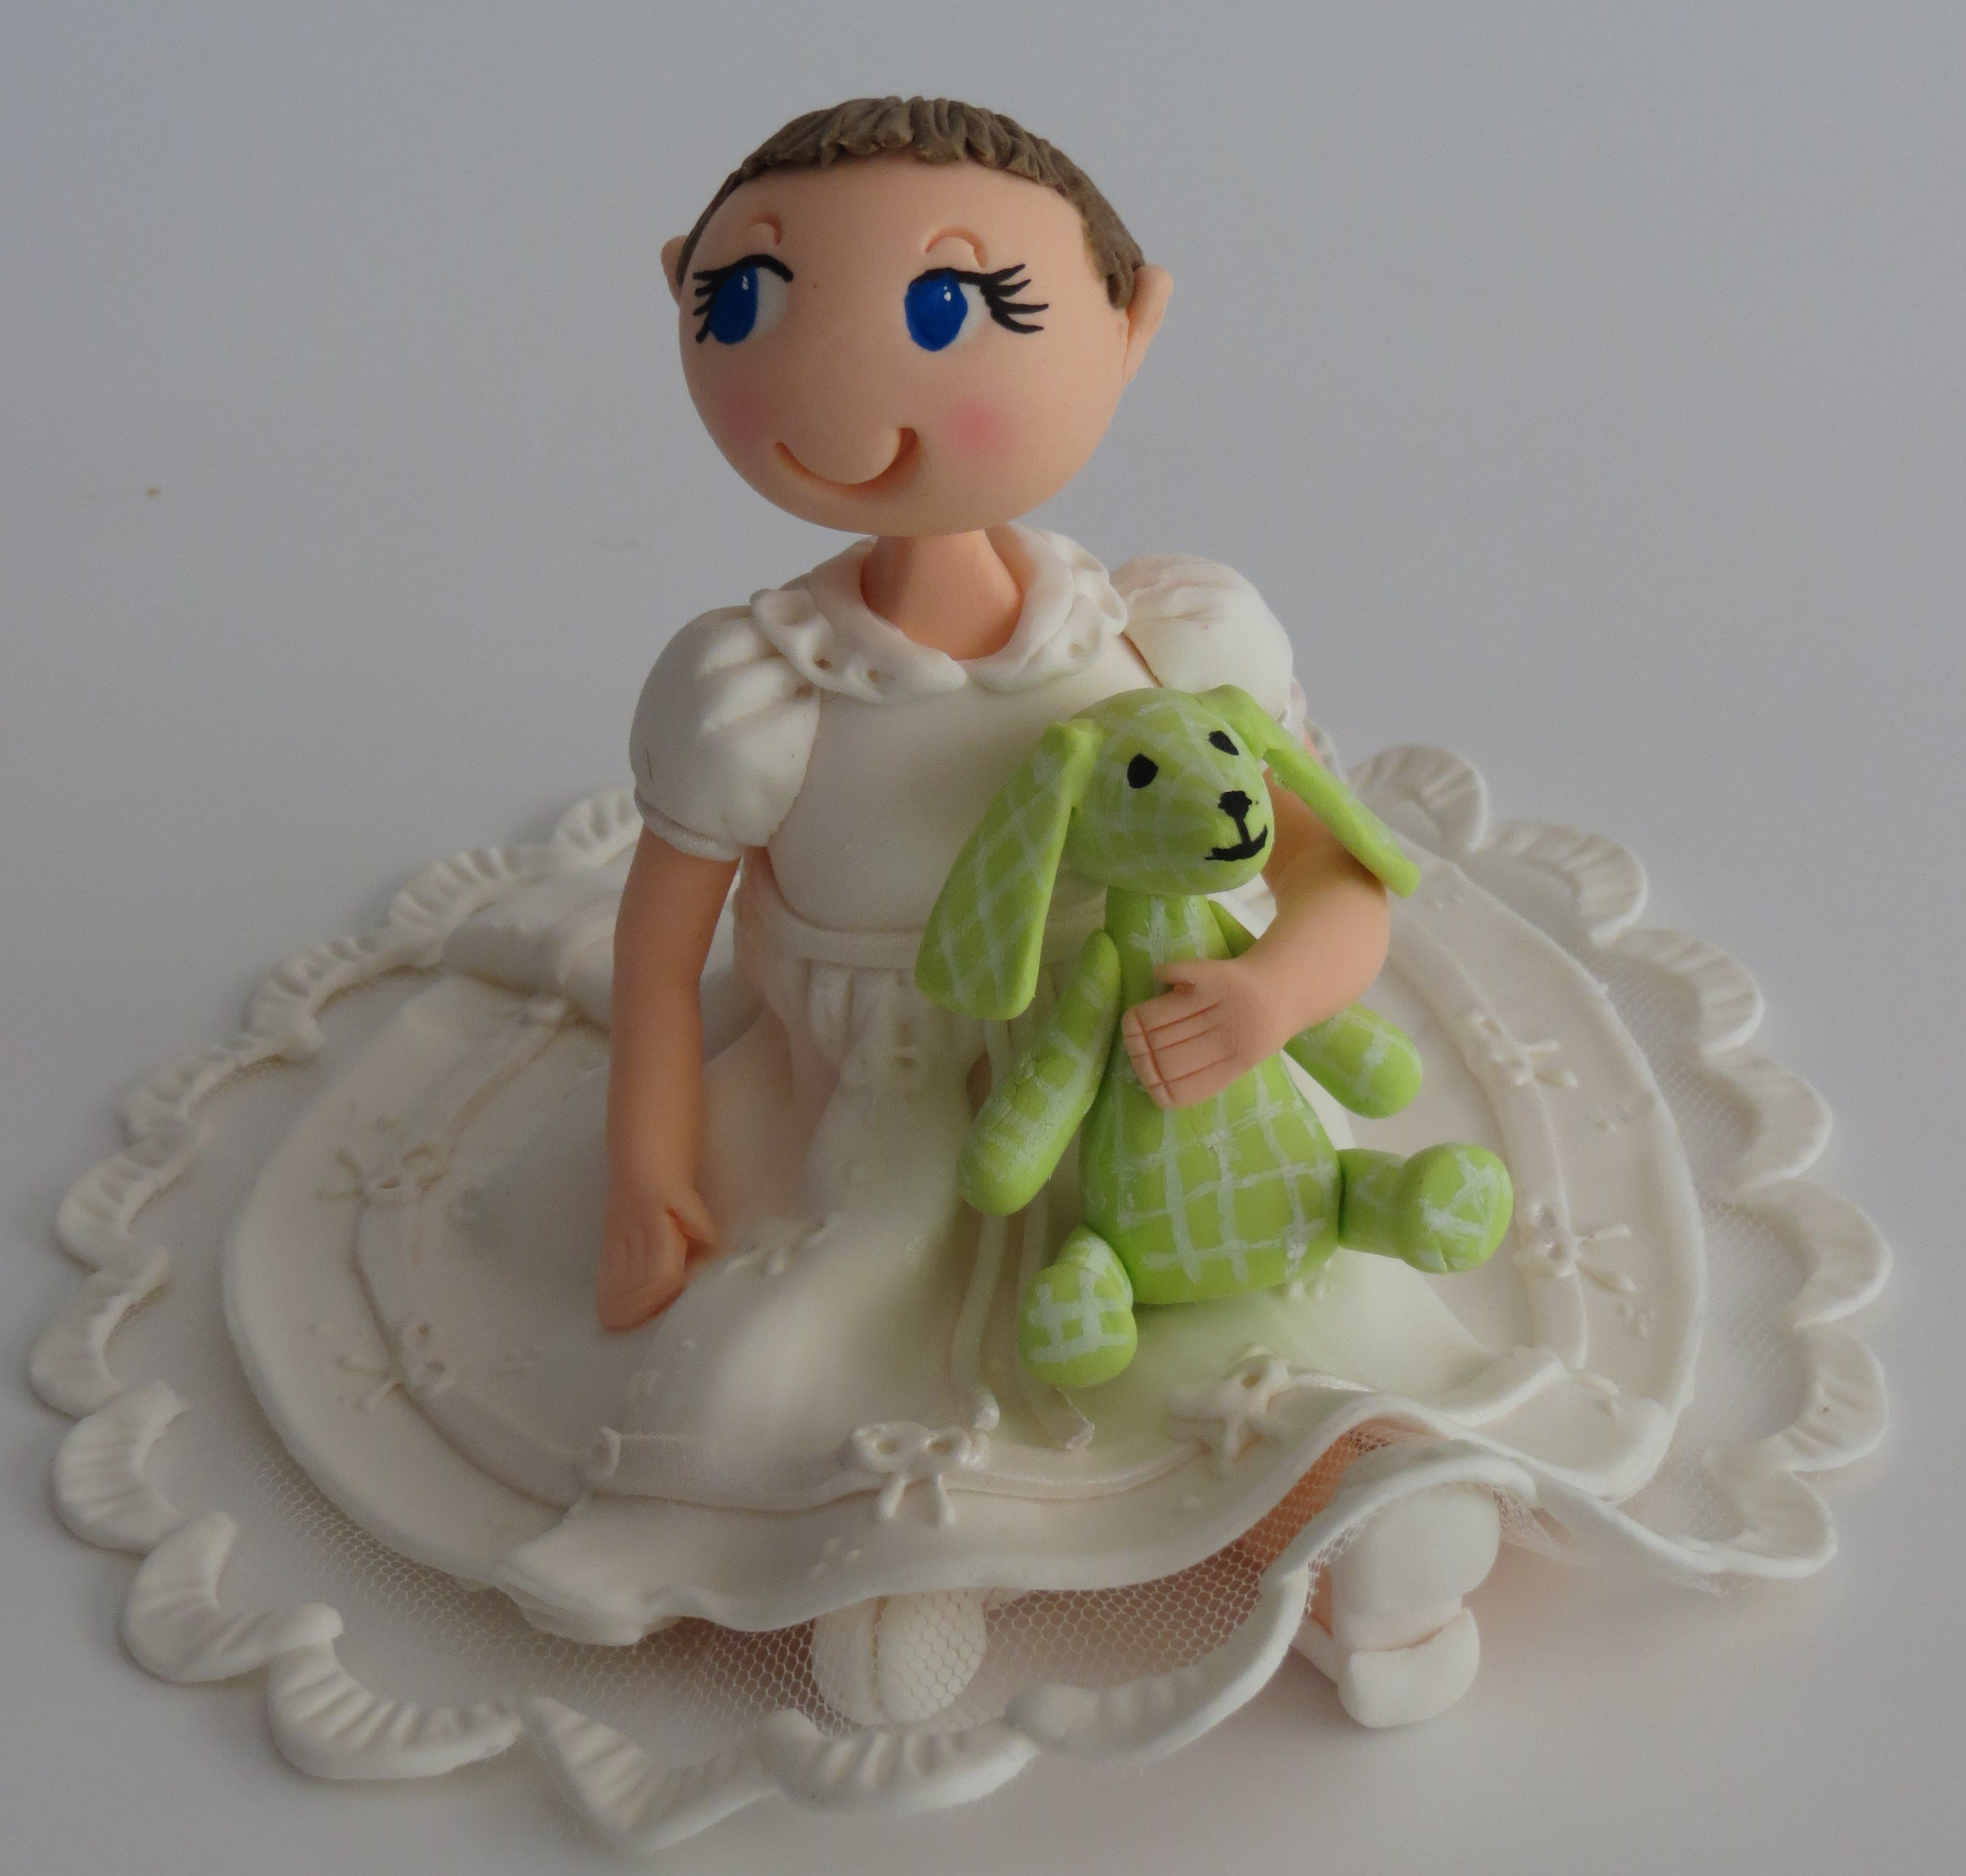 Special Occasion Baby Figurine 00002